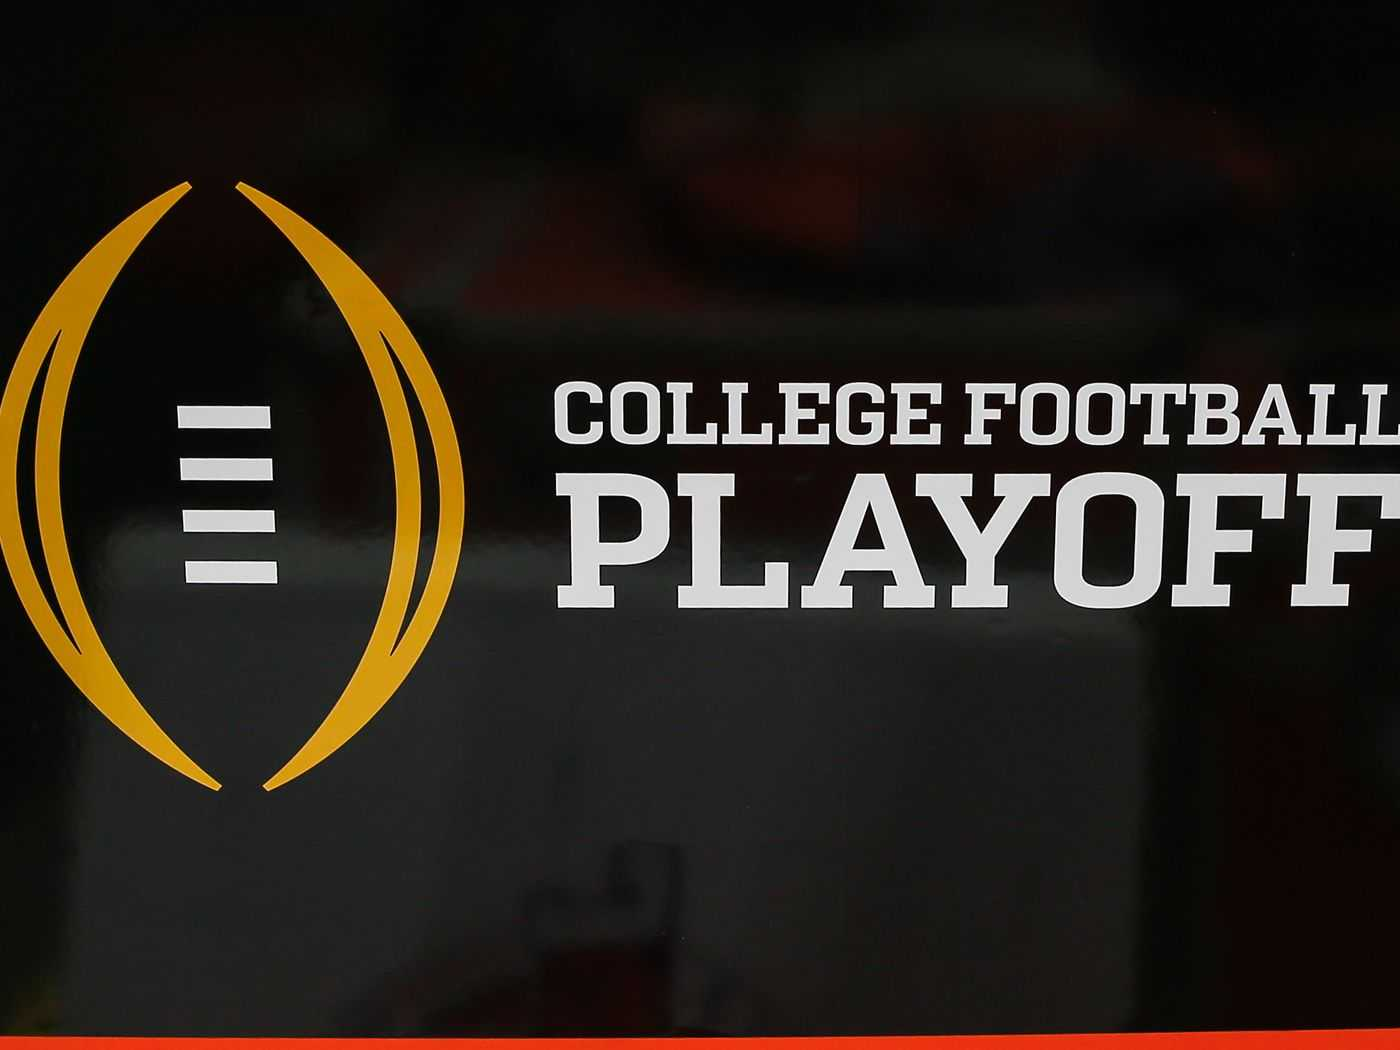 Expand the College Football Playoff